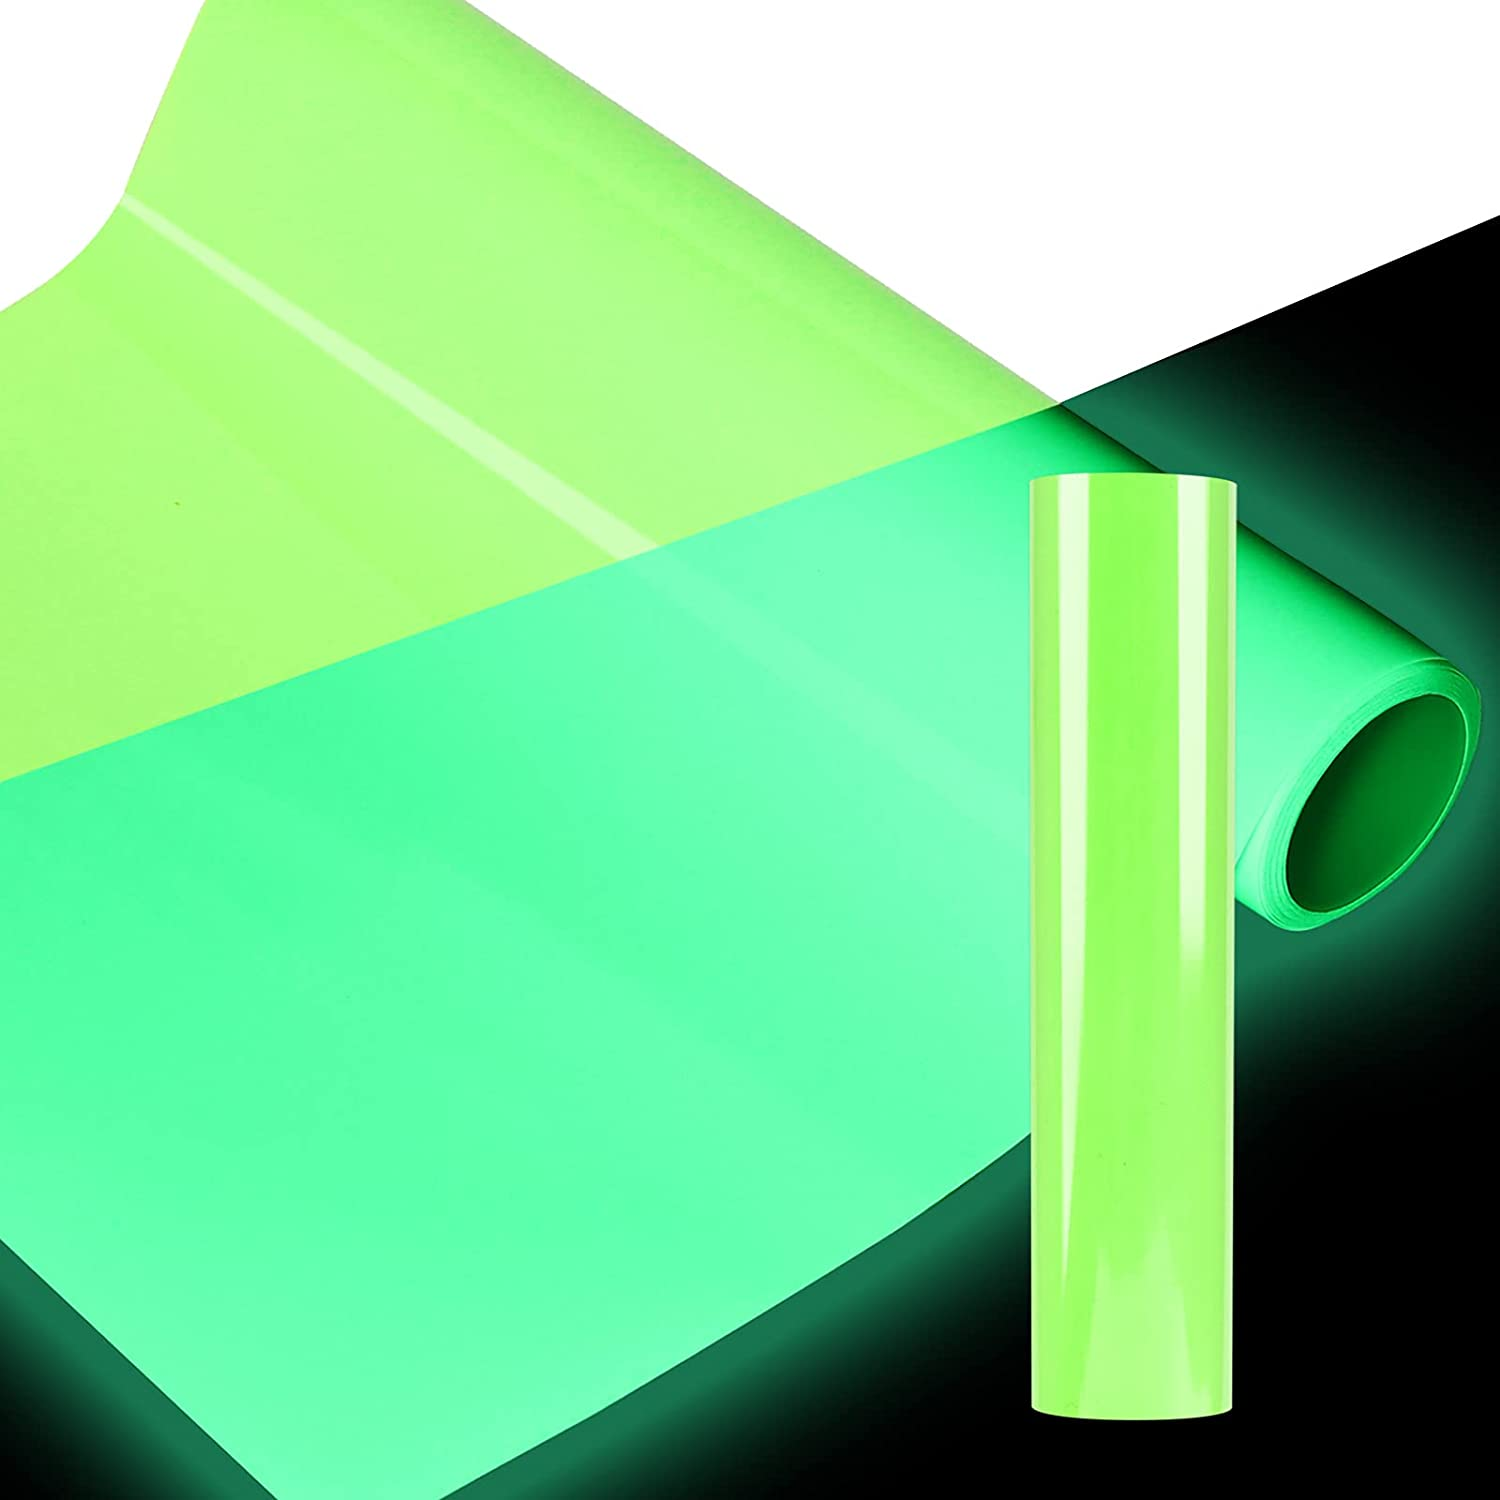 Popular shop is the lowest price challenge Heat Transfer Vinyl Roll Glow in Dark Ranking TOP11 6f on The 10